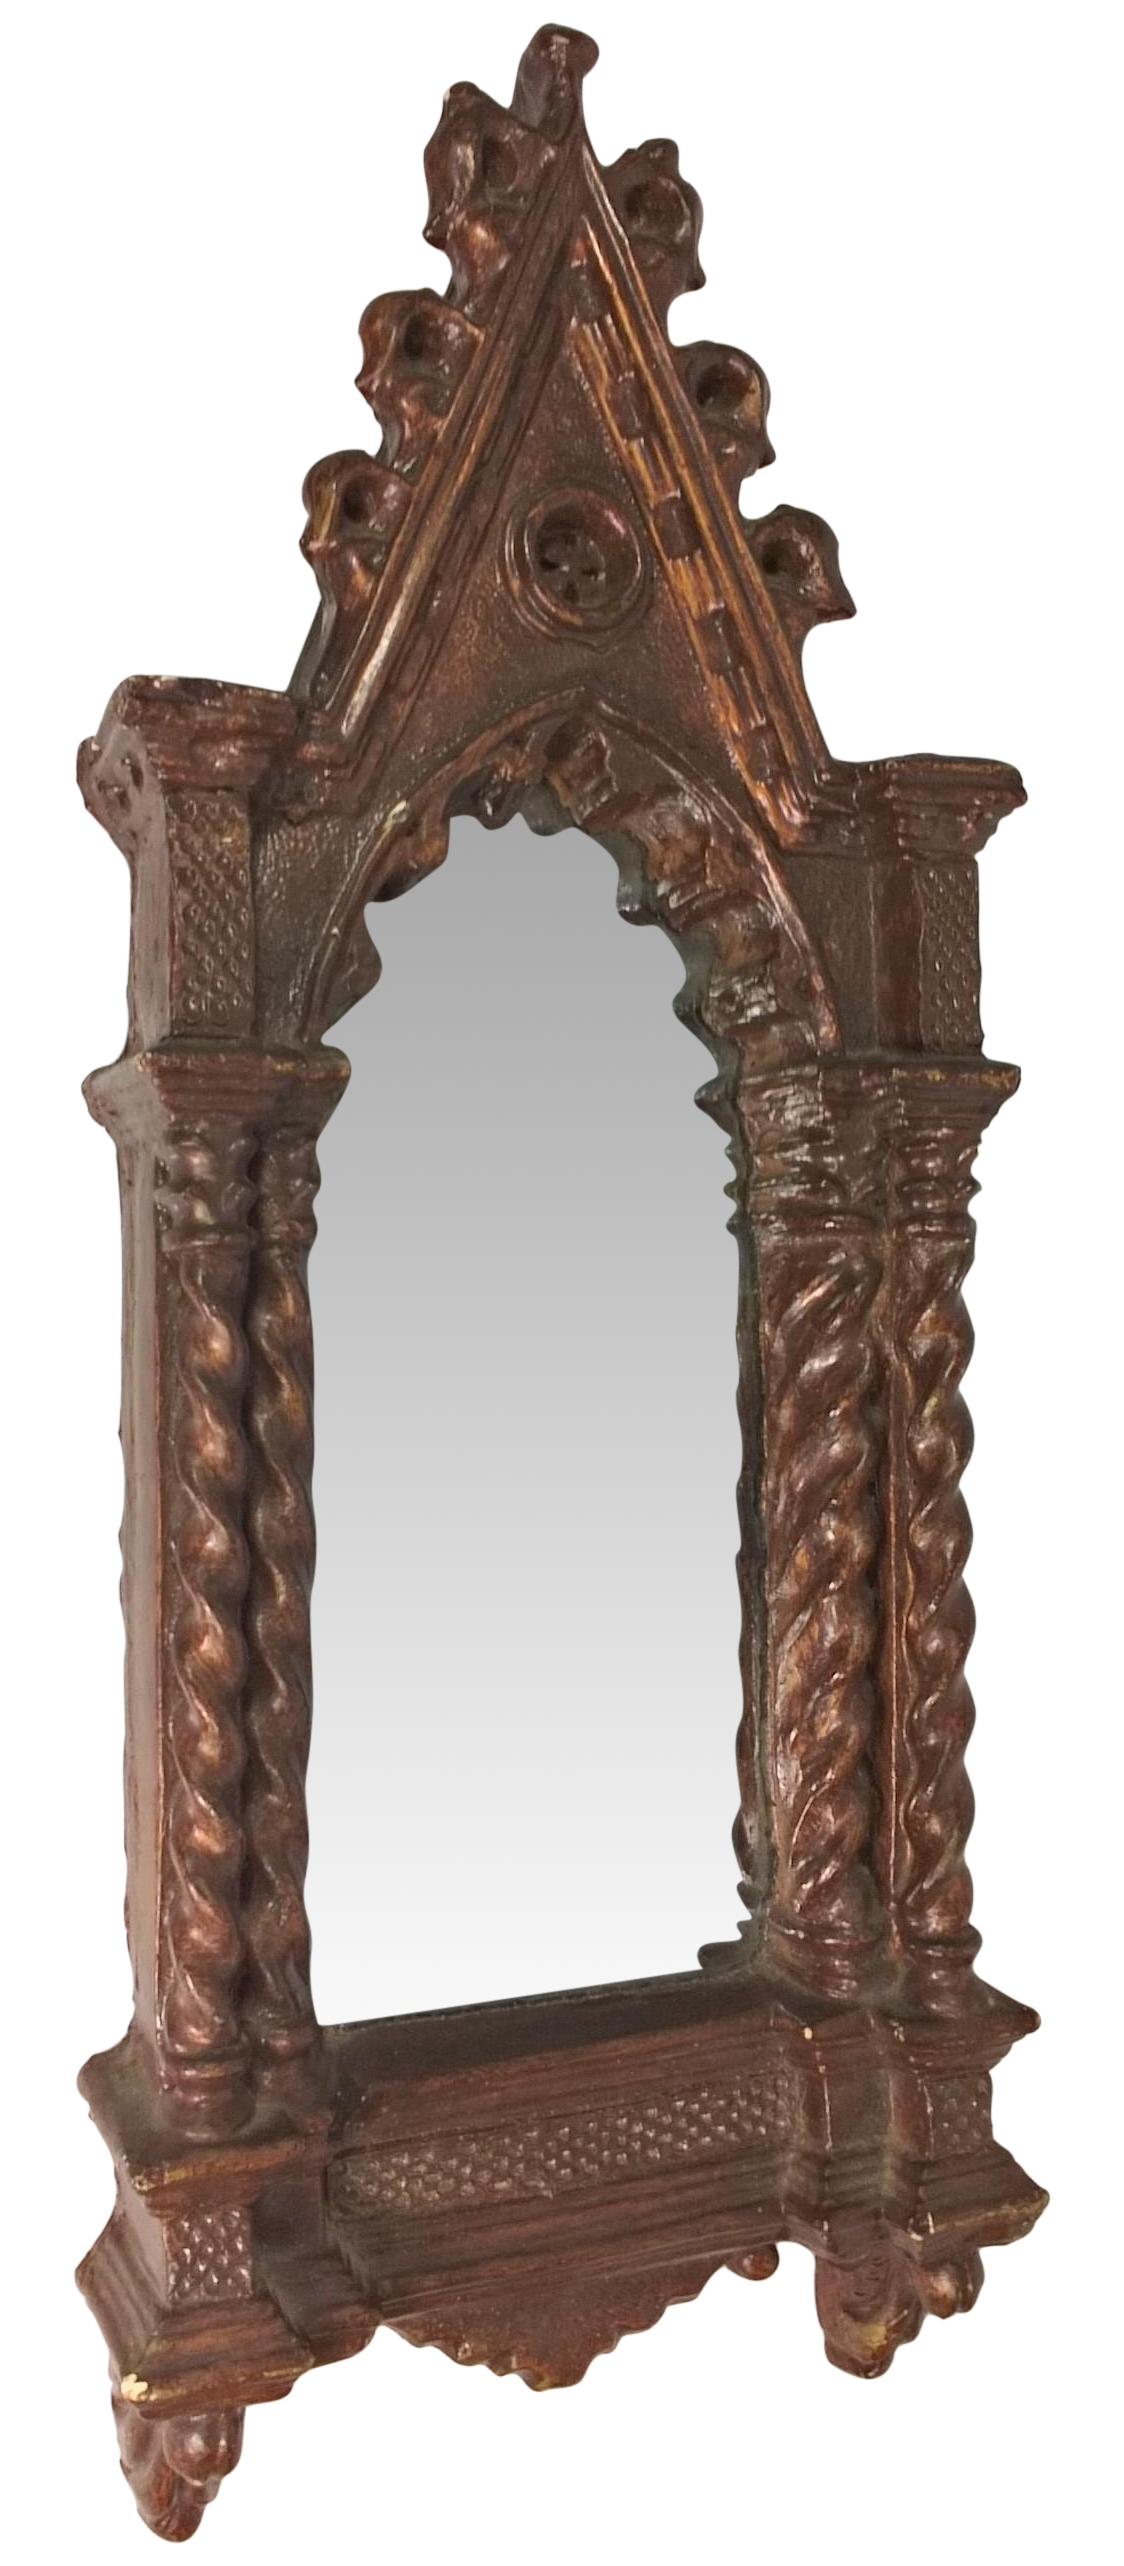 Antique gothic cathedral style wall mirror chairish amipublicfo Gallery